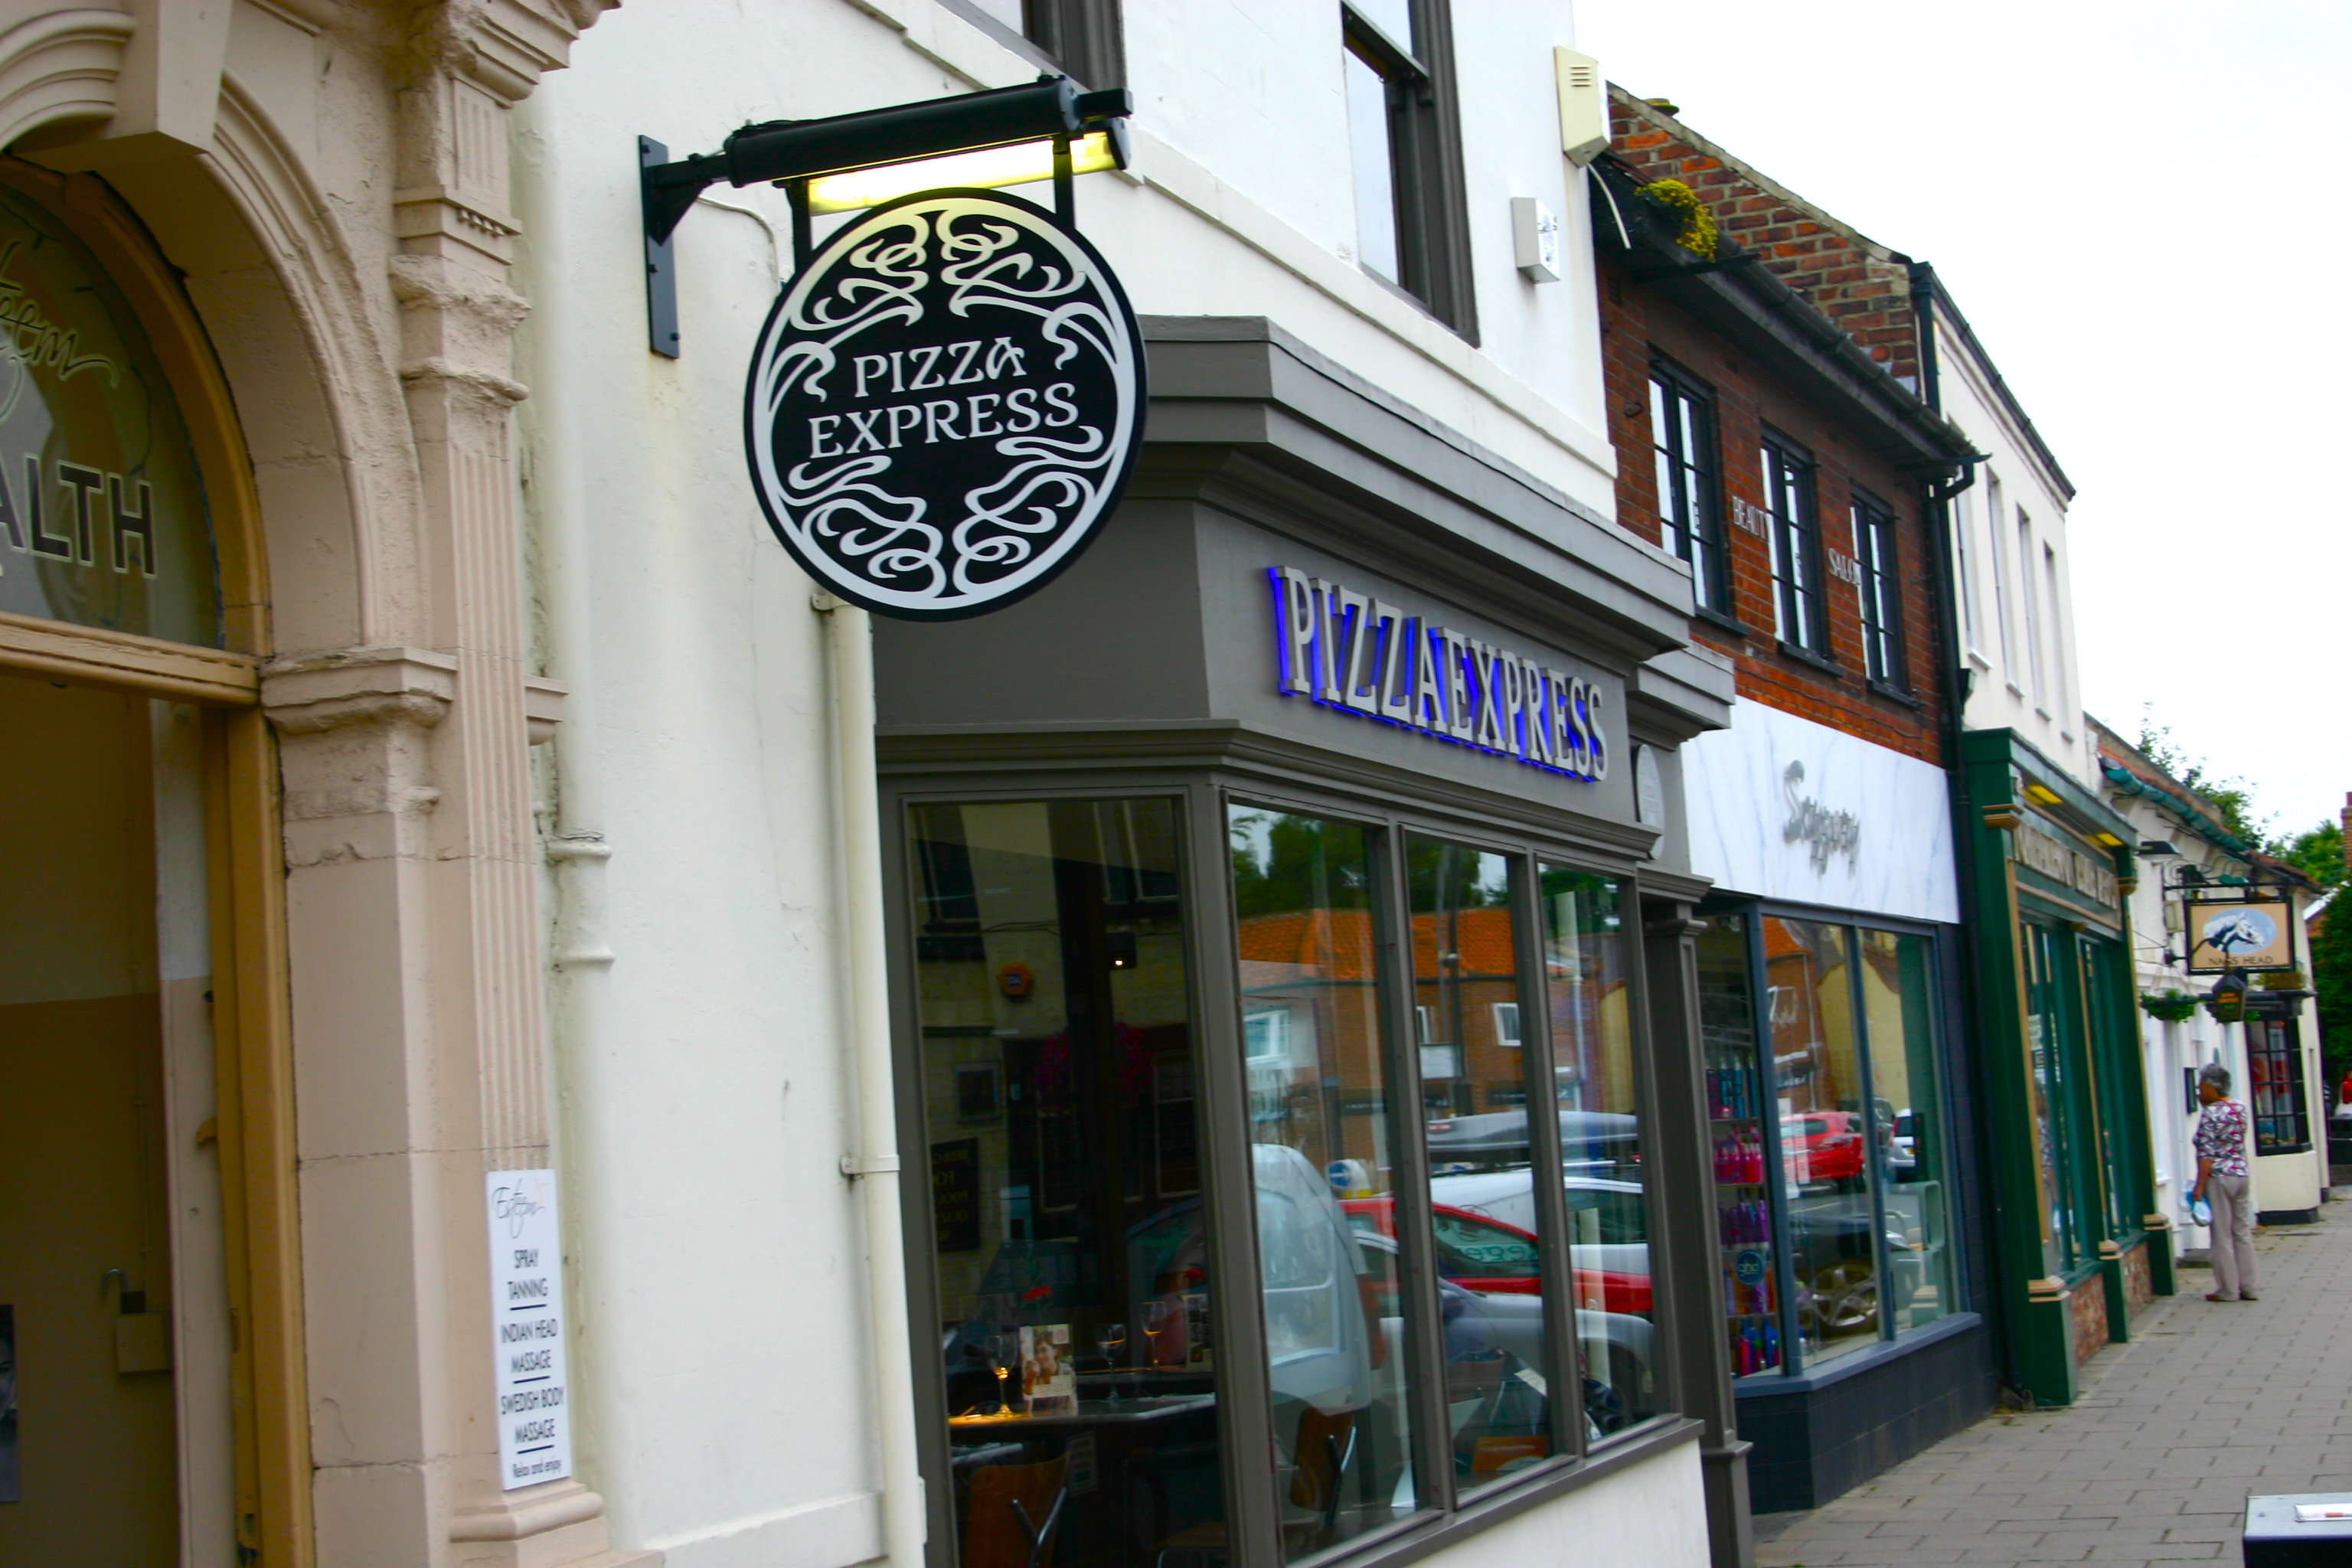 Filenorthallerton Pizza Expressjpg Wikimedia Commons